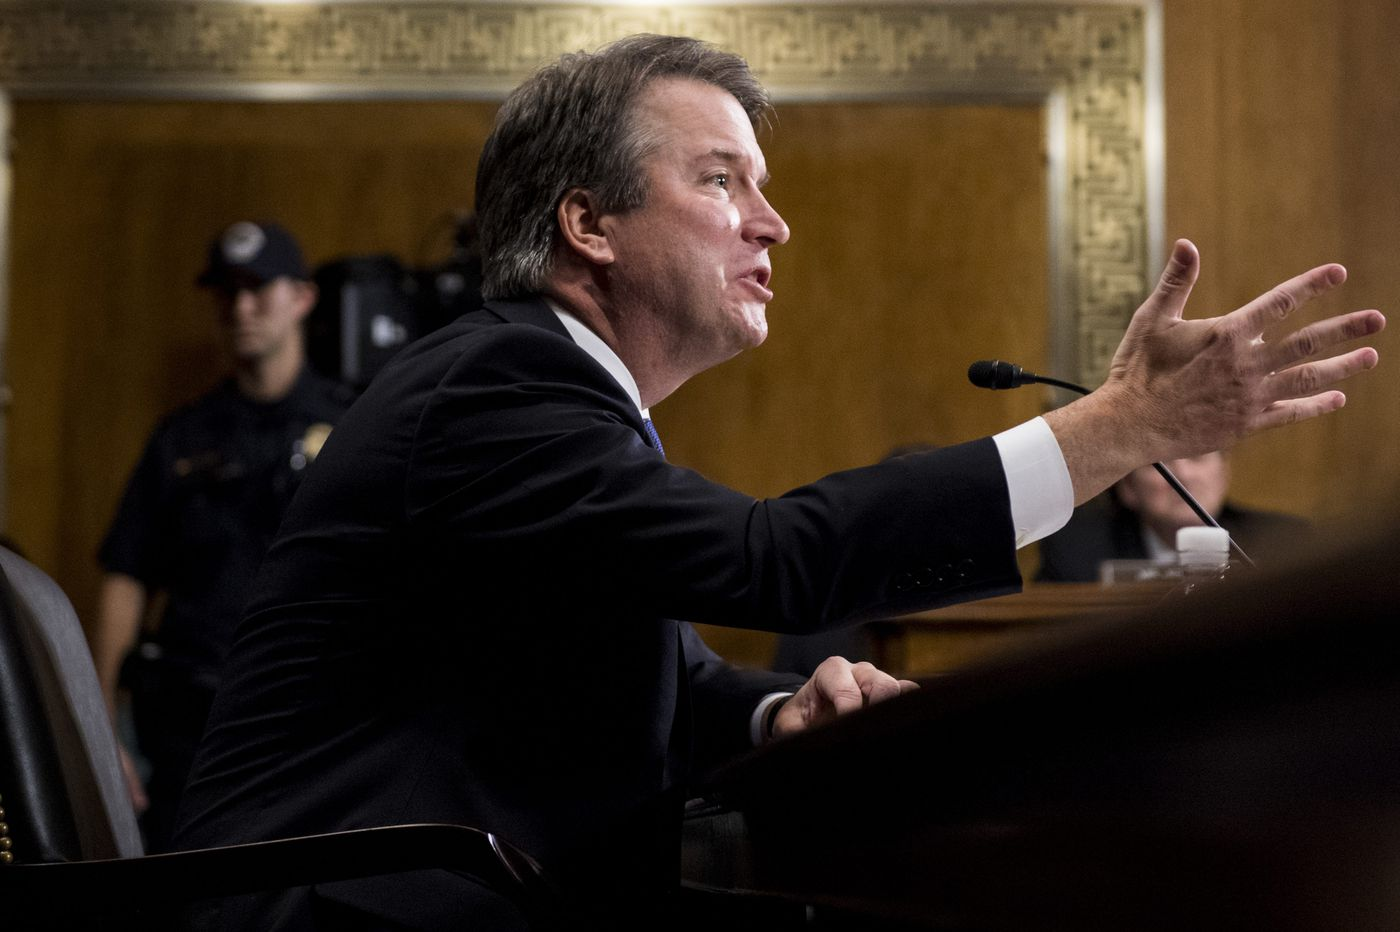 Kavanaugh Confirmation Trump Orders Fbi To Launch Investigation Watch And Latest News In Senate Judiciary Committee